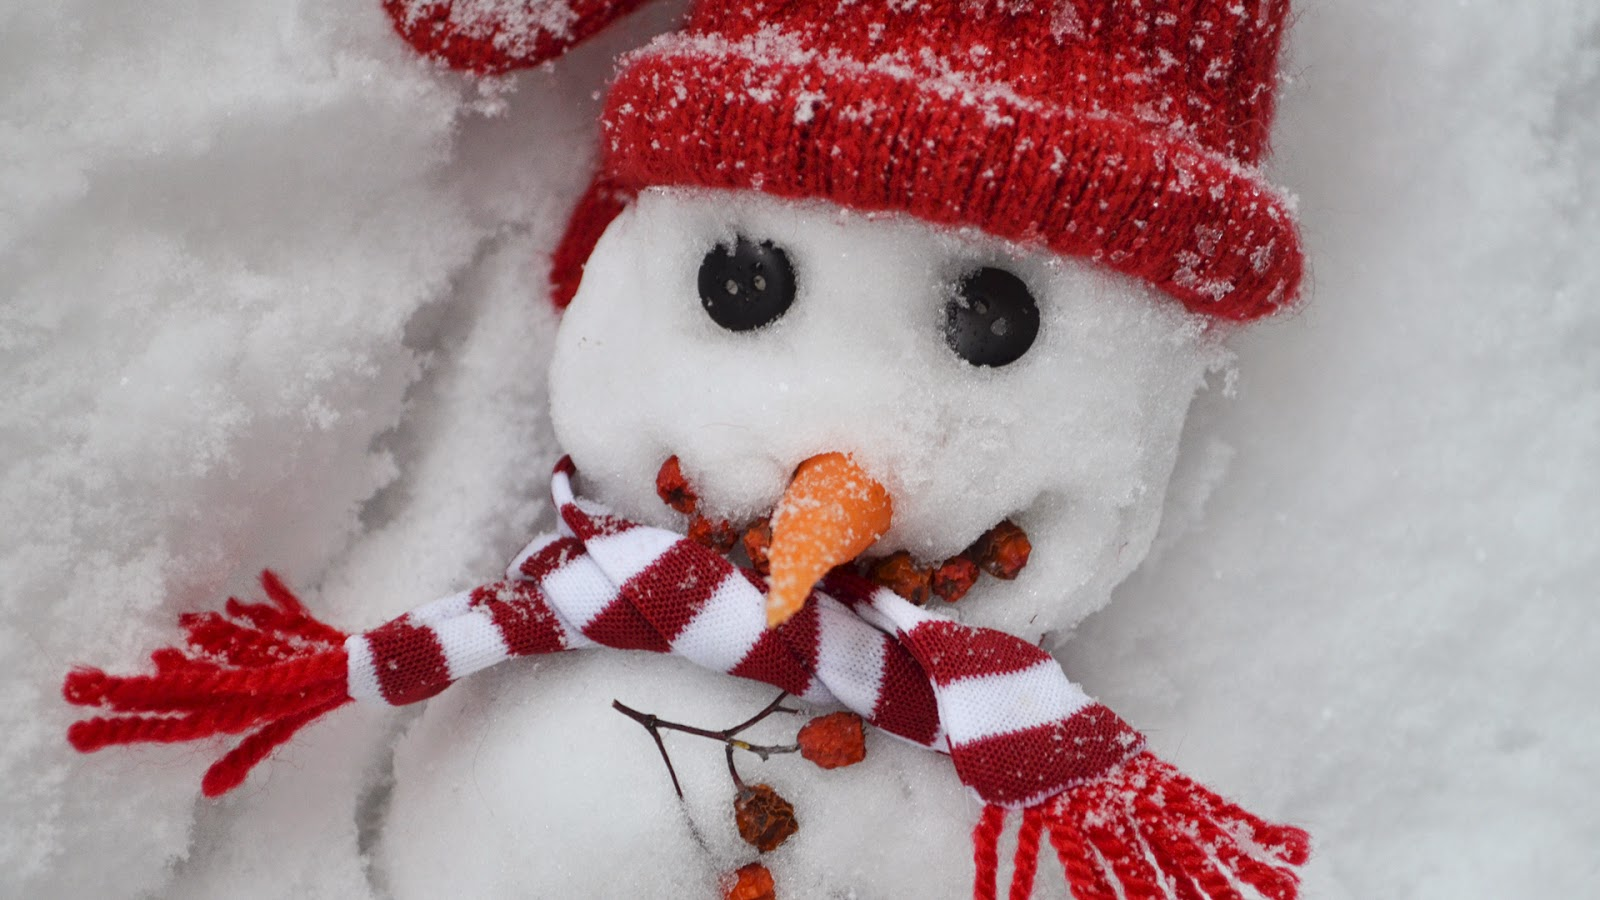 Beautiful-attractive-snowman-handmade-home-outdoor-craft-photos-HD-images.jpg